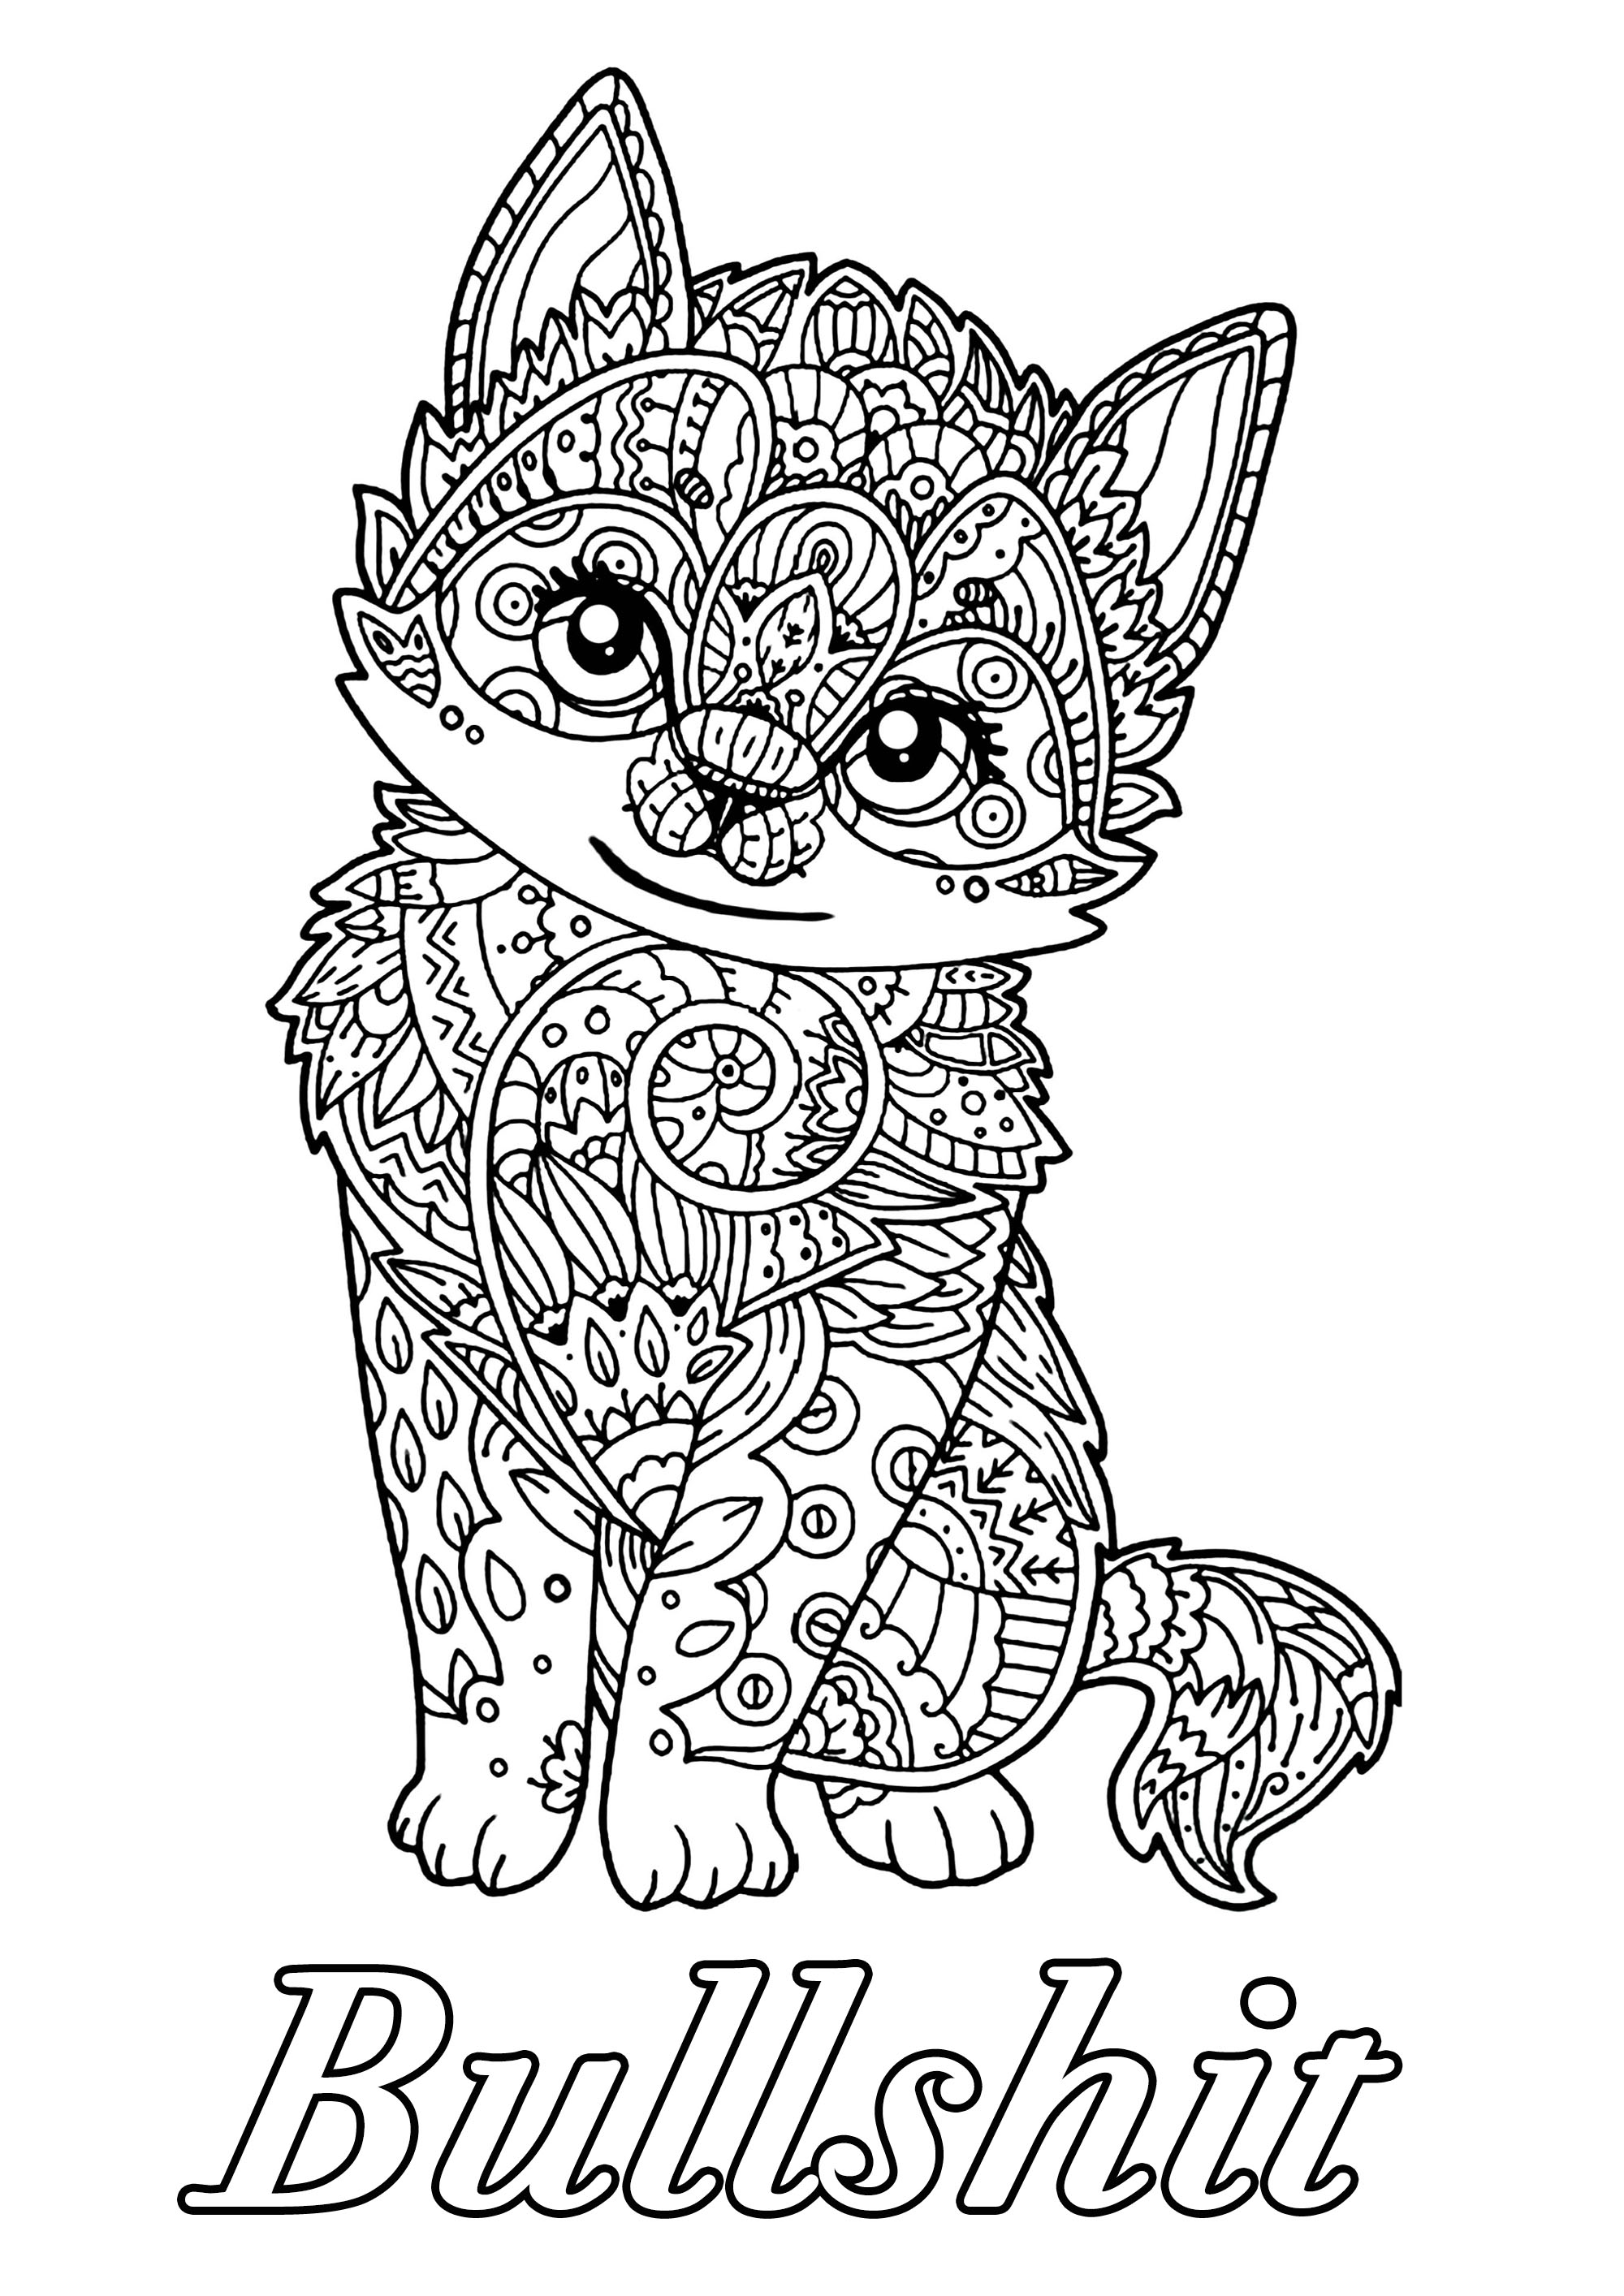 Life is a Bitch Swear word coloring - Adult Coloring Pages